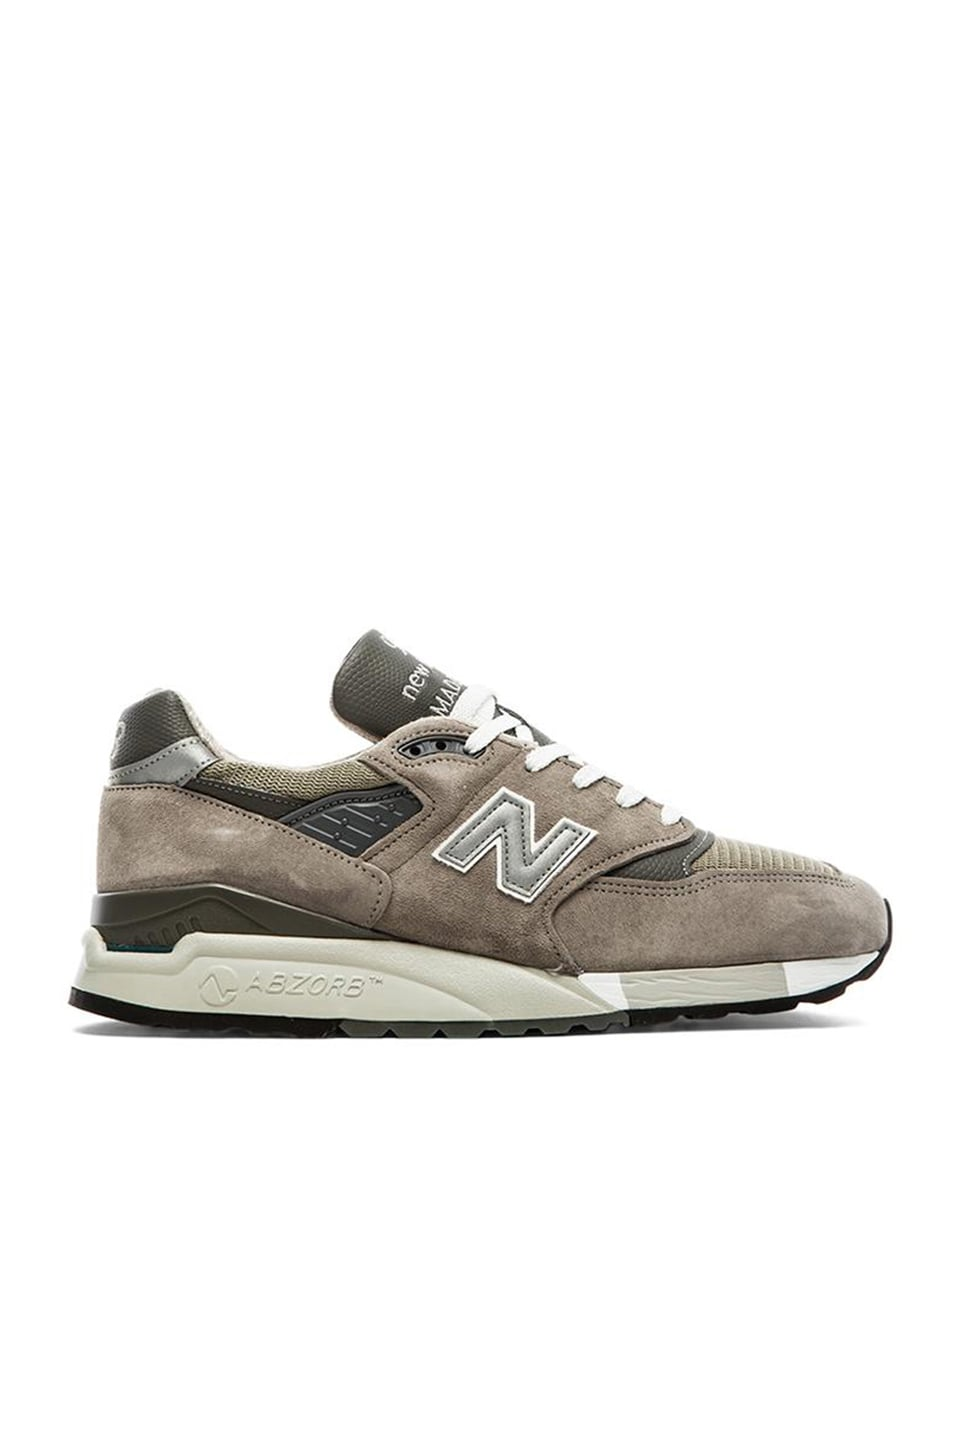 Made in USA M998 by New Balance